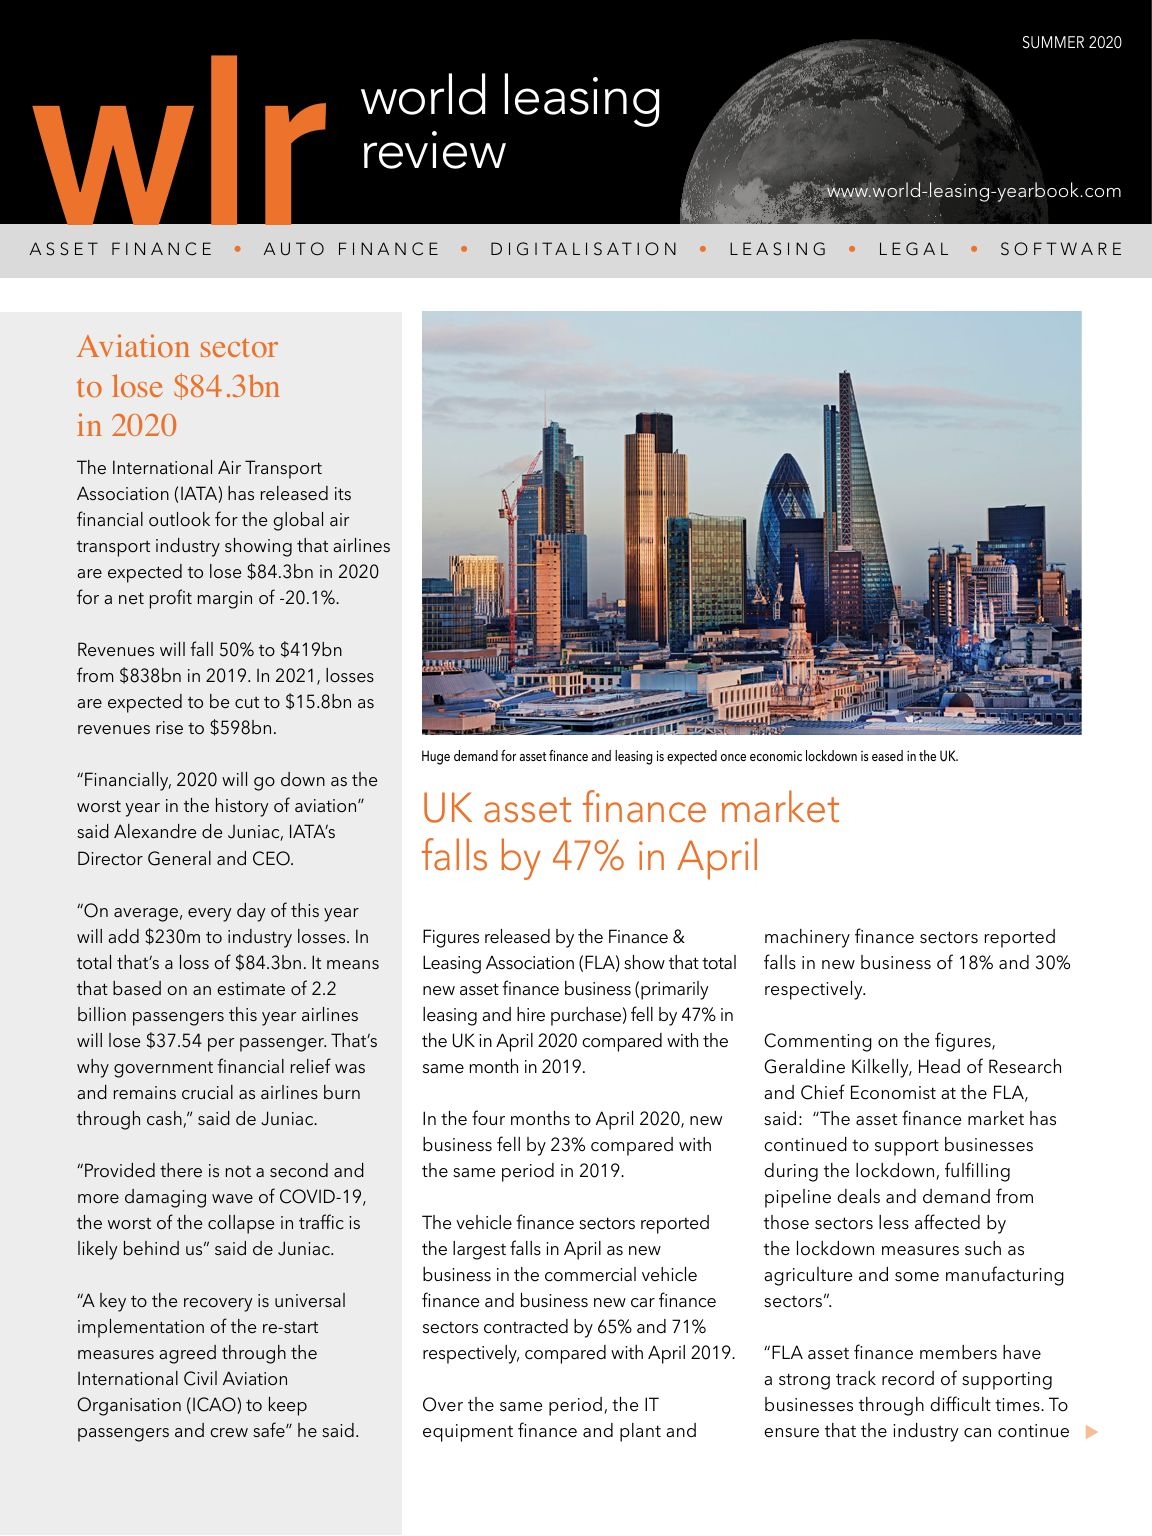 World Leasing Review Summer 2020 Issue